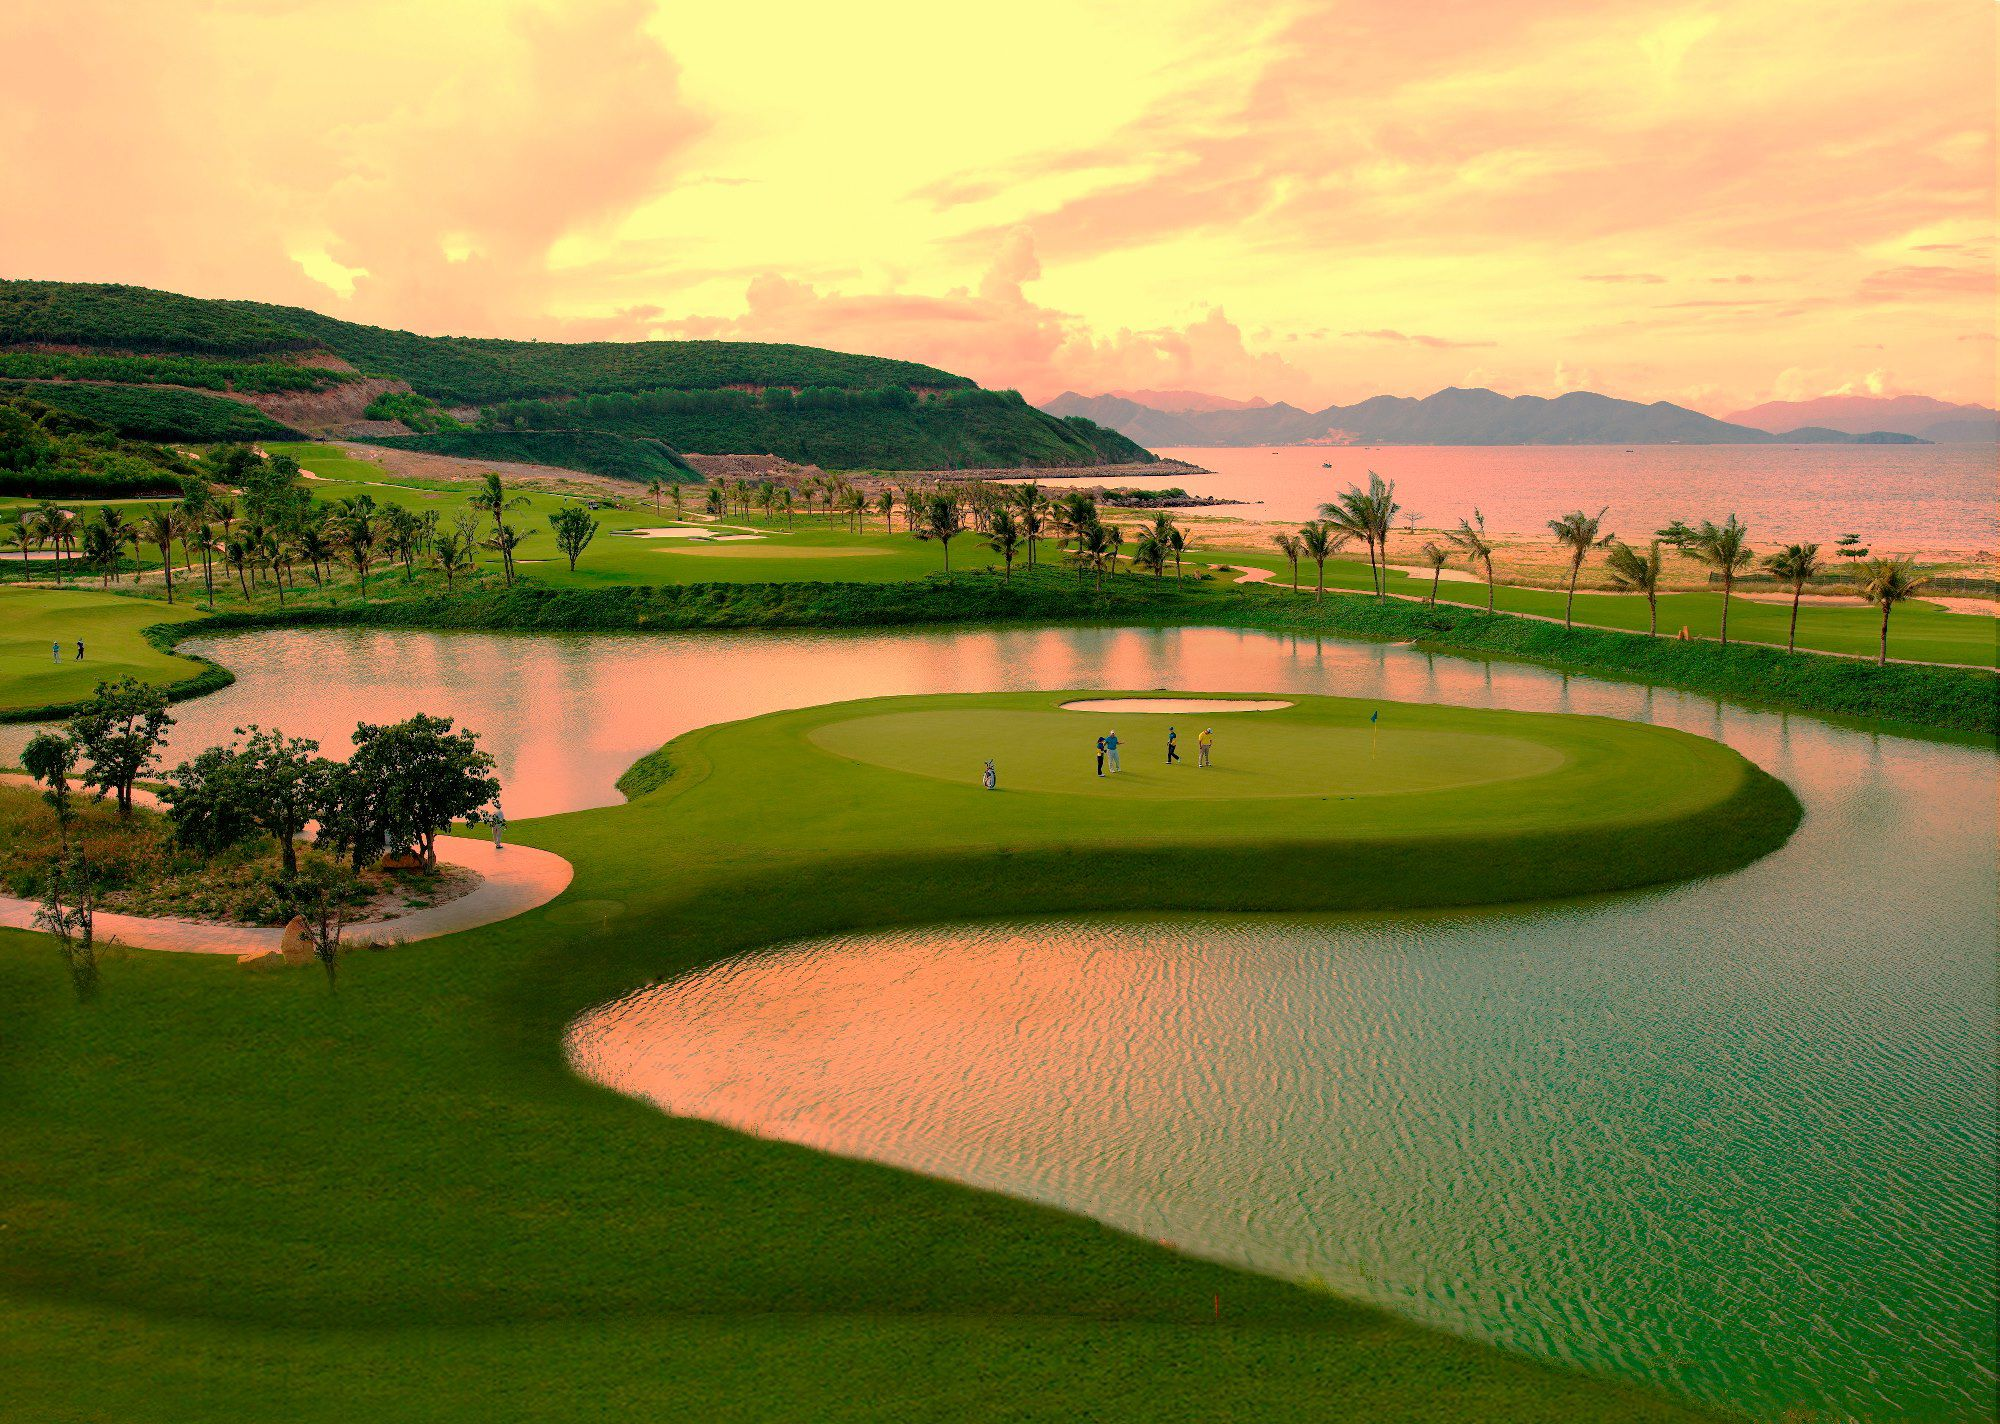 https://bubo.sk/uploads/galleries/4904/vinpearl_golf_nha_trang_cover_picture.jpg